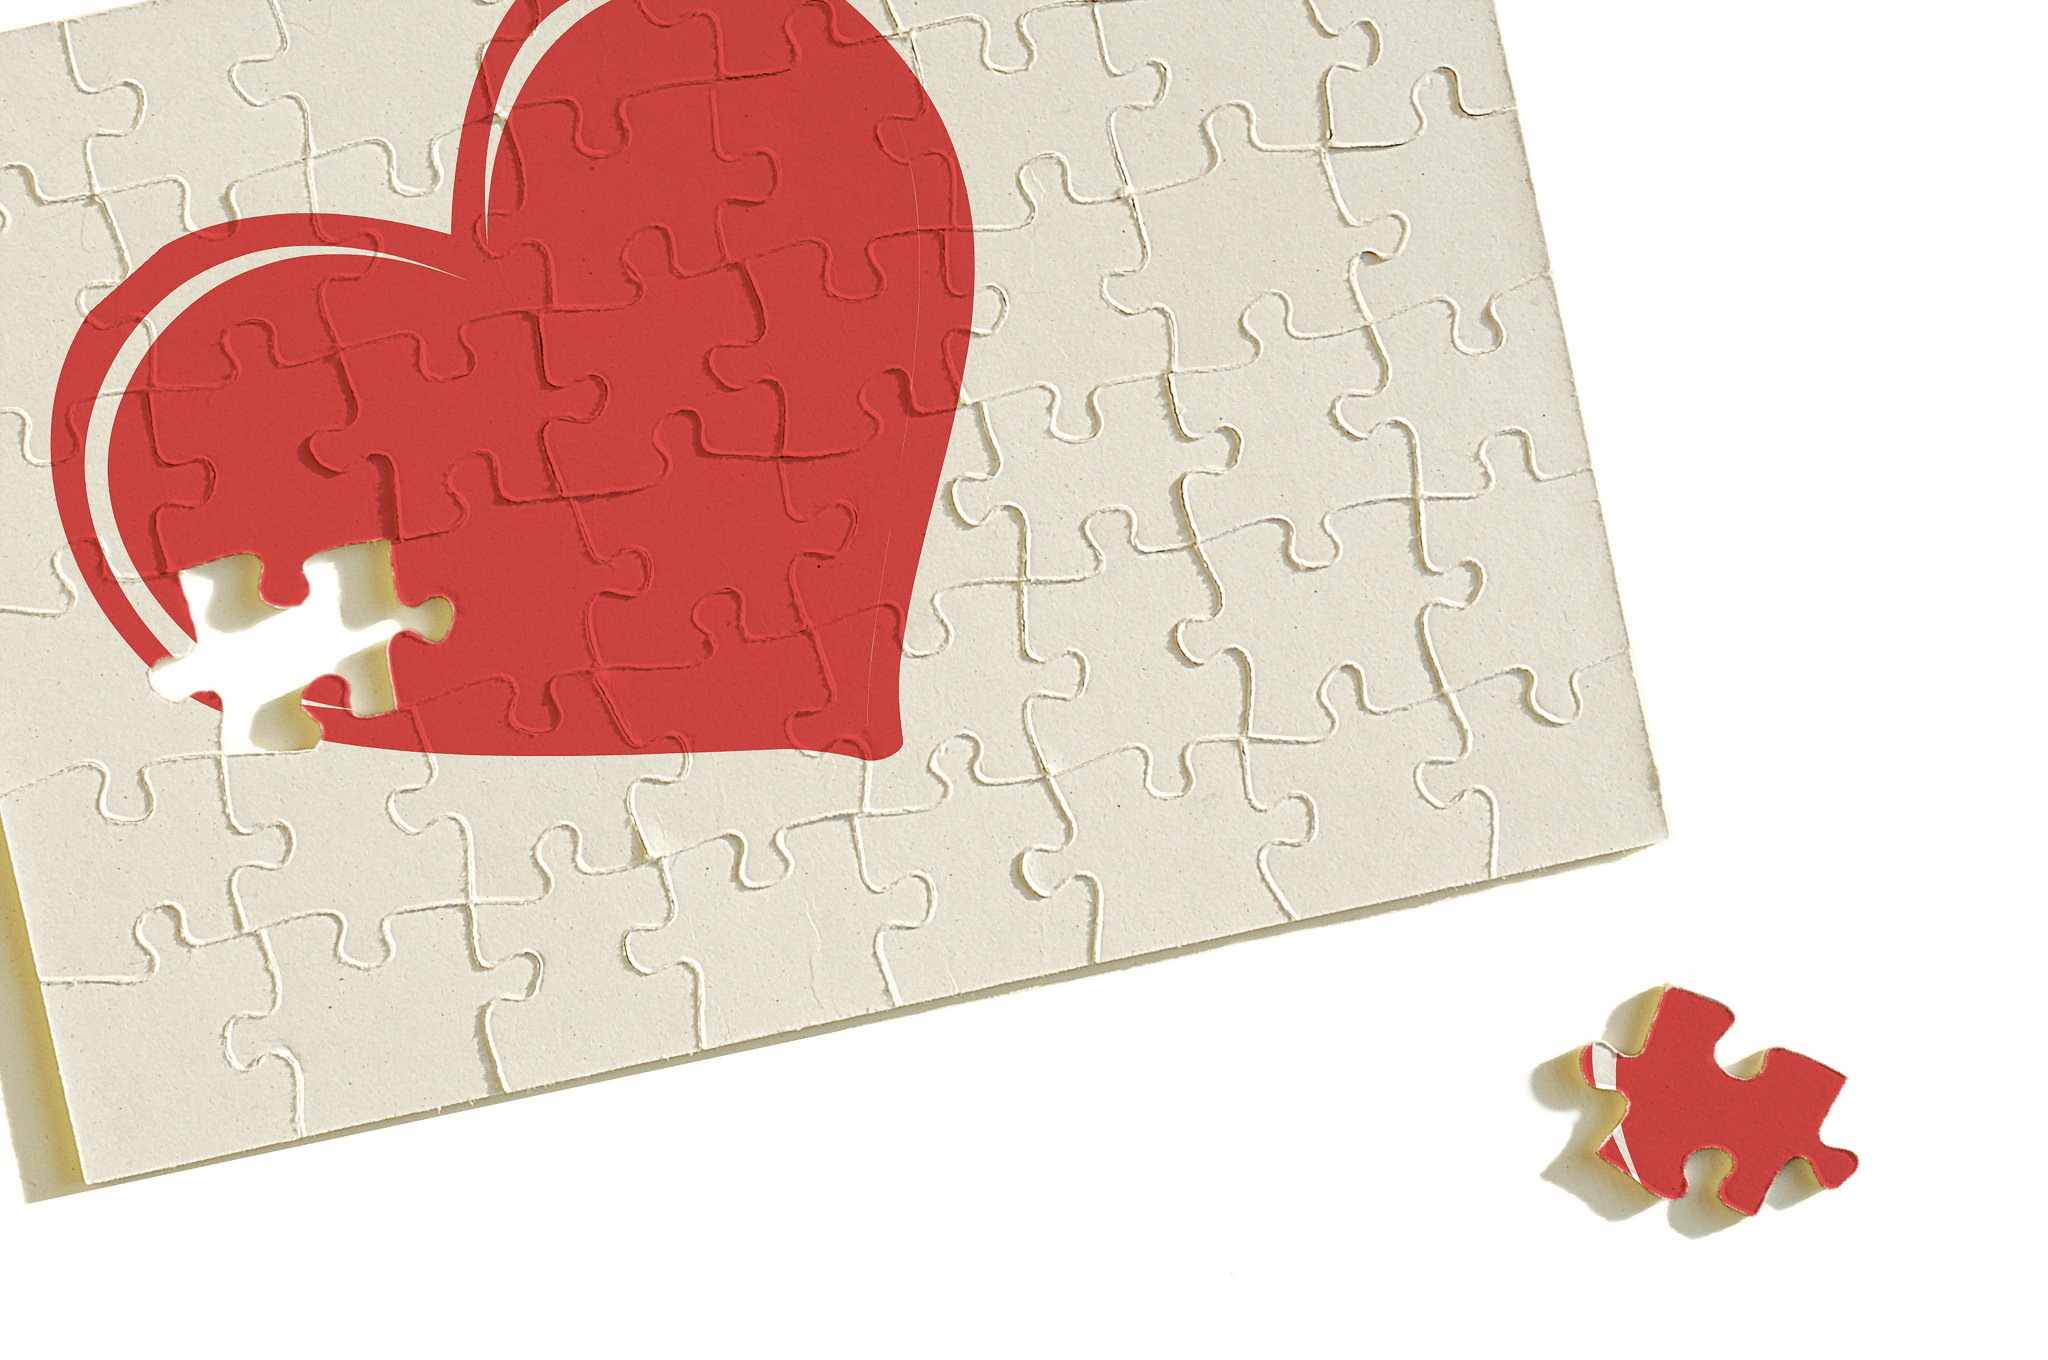 Love Puzzle Wallpapers ID694396